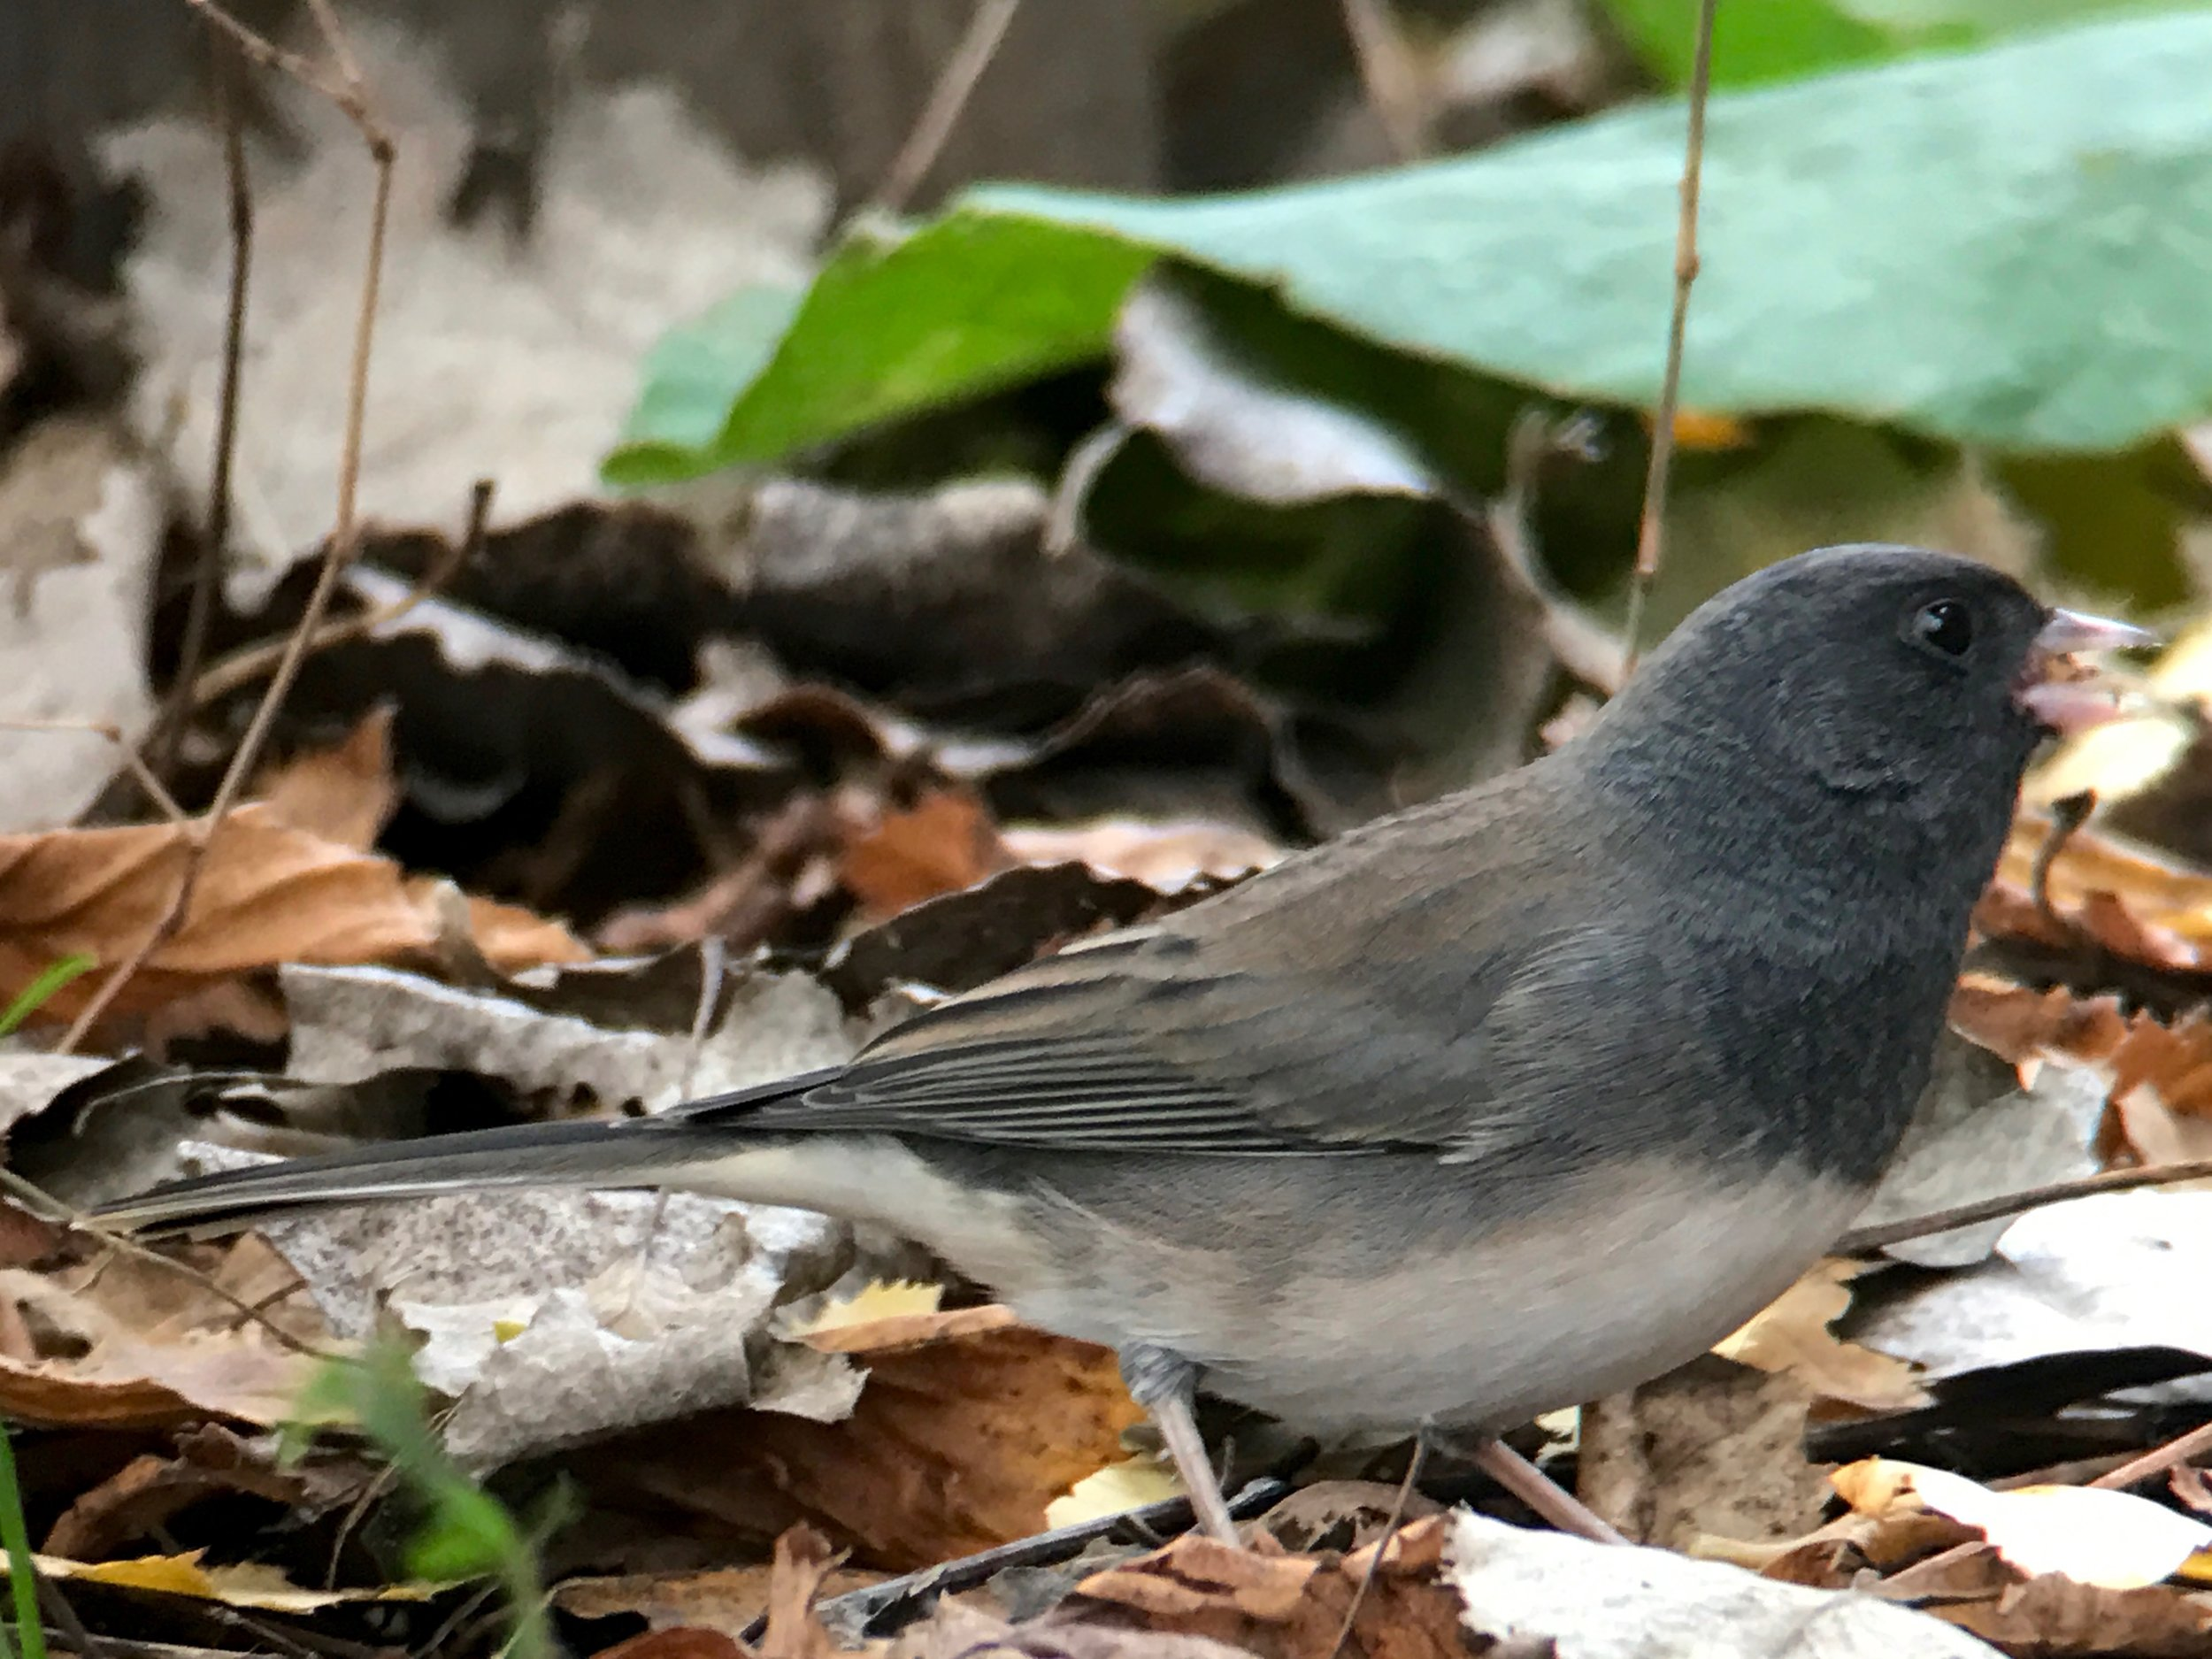 Same junco with the iPhone 7 plus with 2x telephoto, handheld up to a Swarovski spotting scope. No cropping.